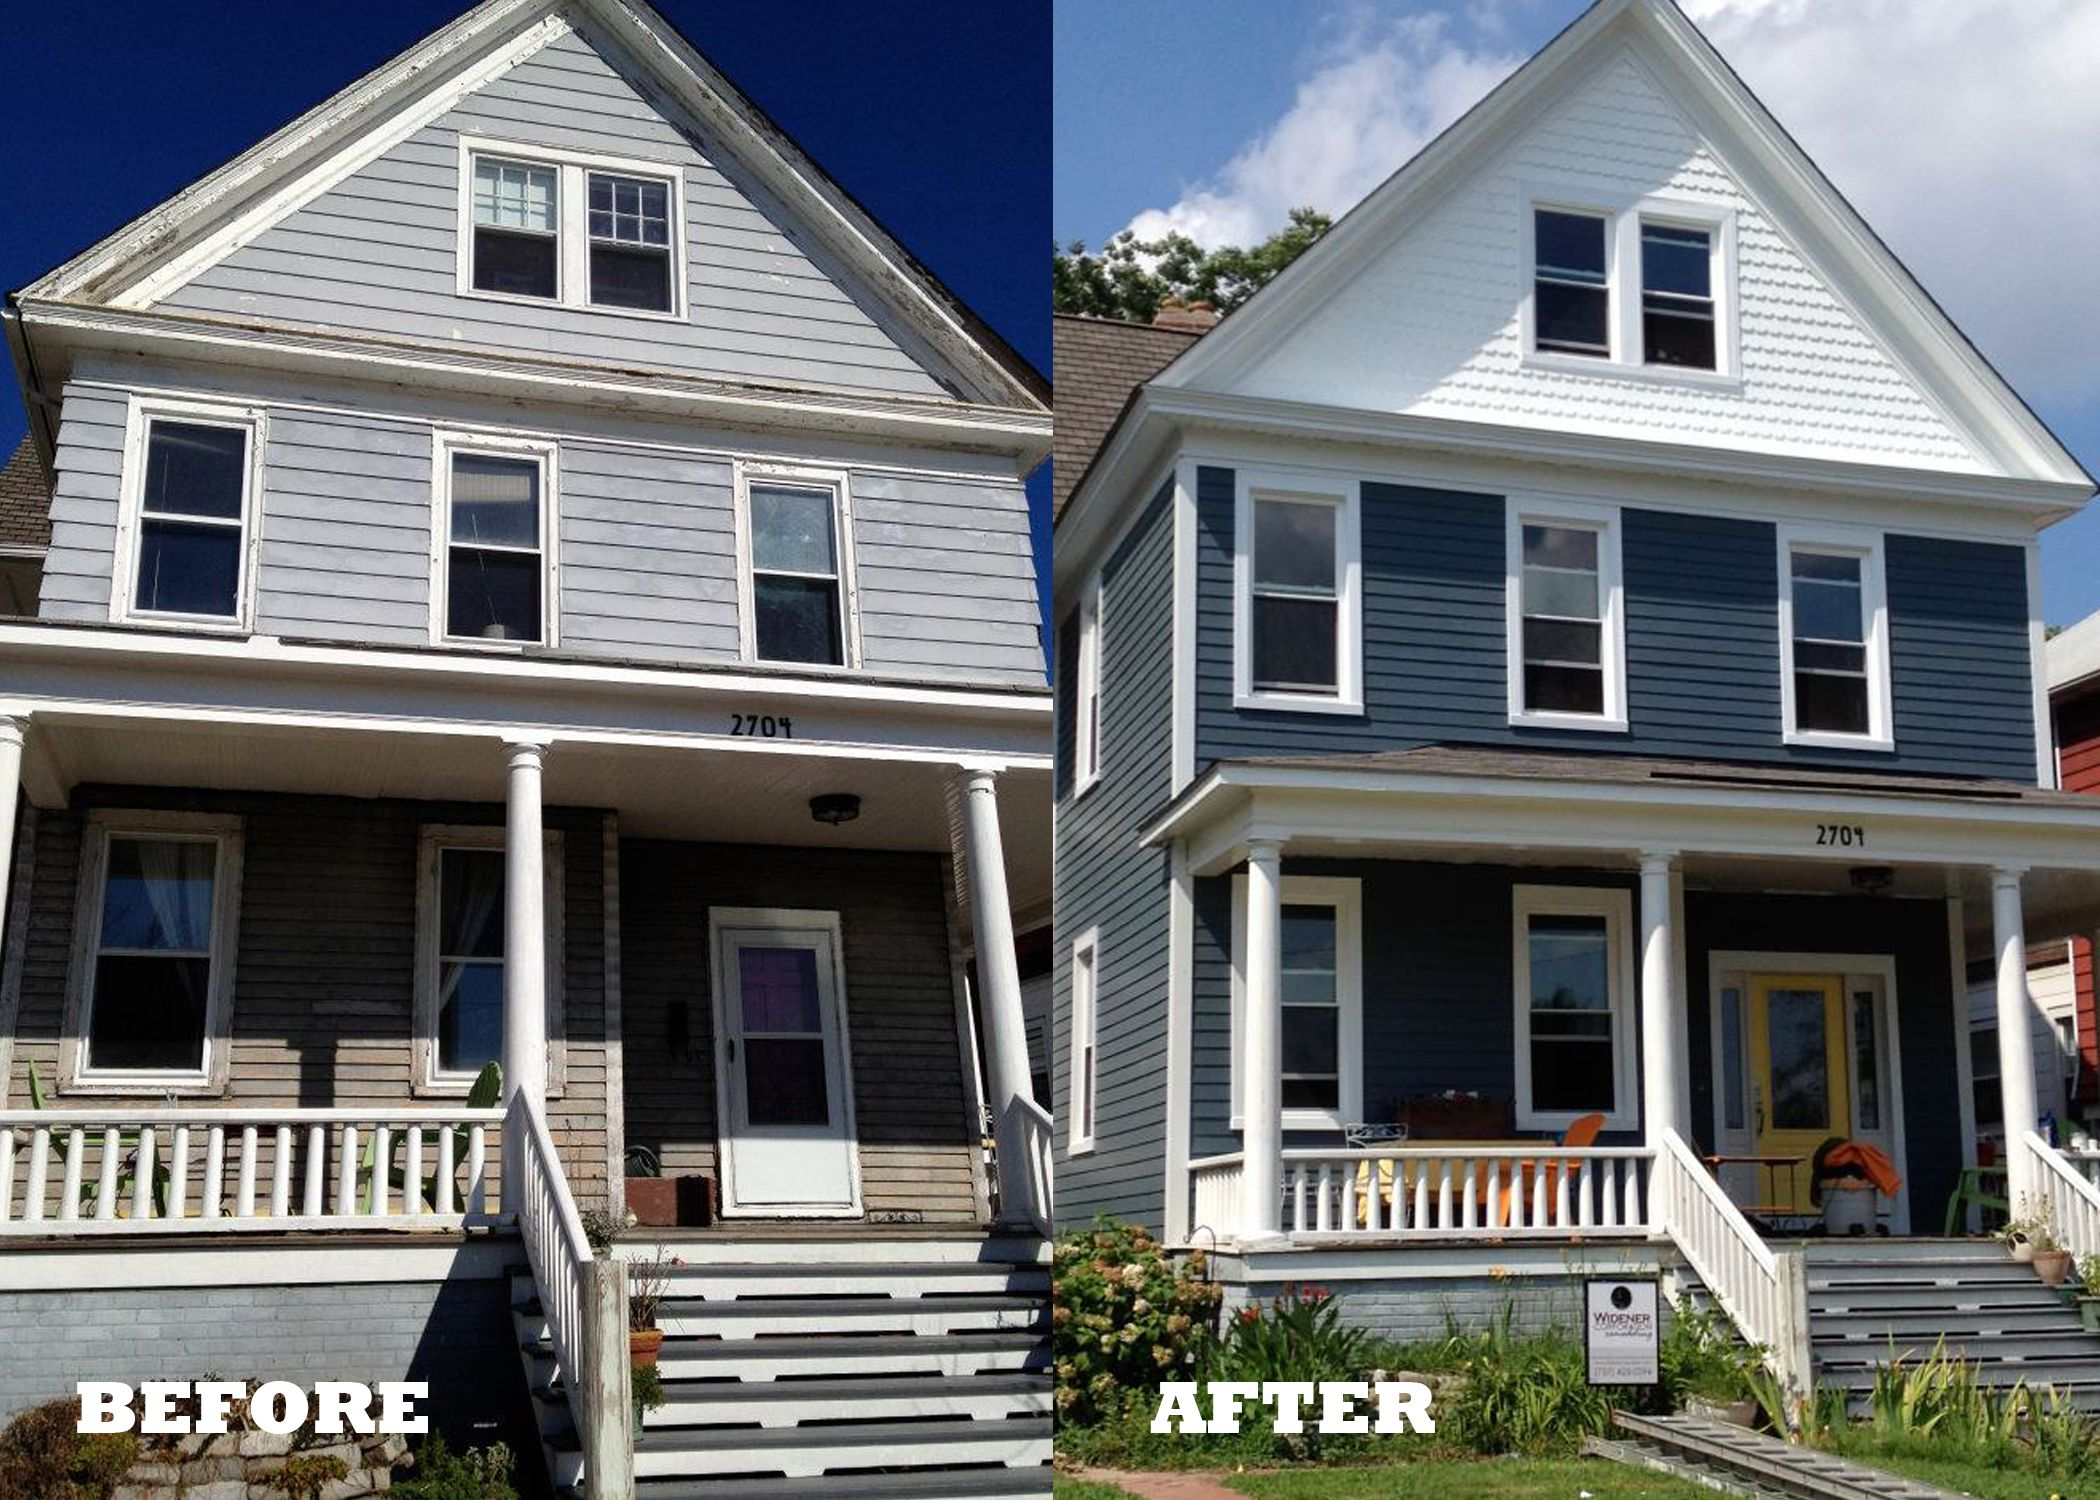 Before And After Featuring James Hardie S Hardieplank Siding House Siding Outdoor Renovation Hardy Plank Siding